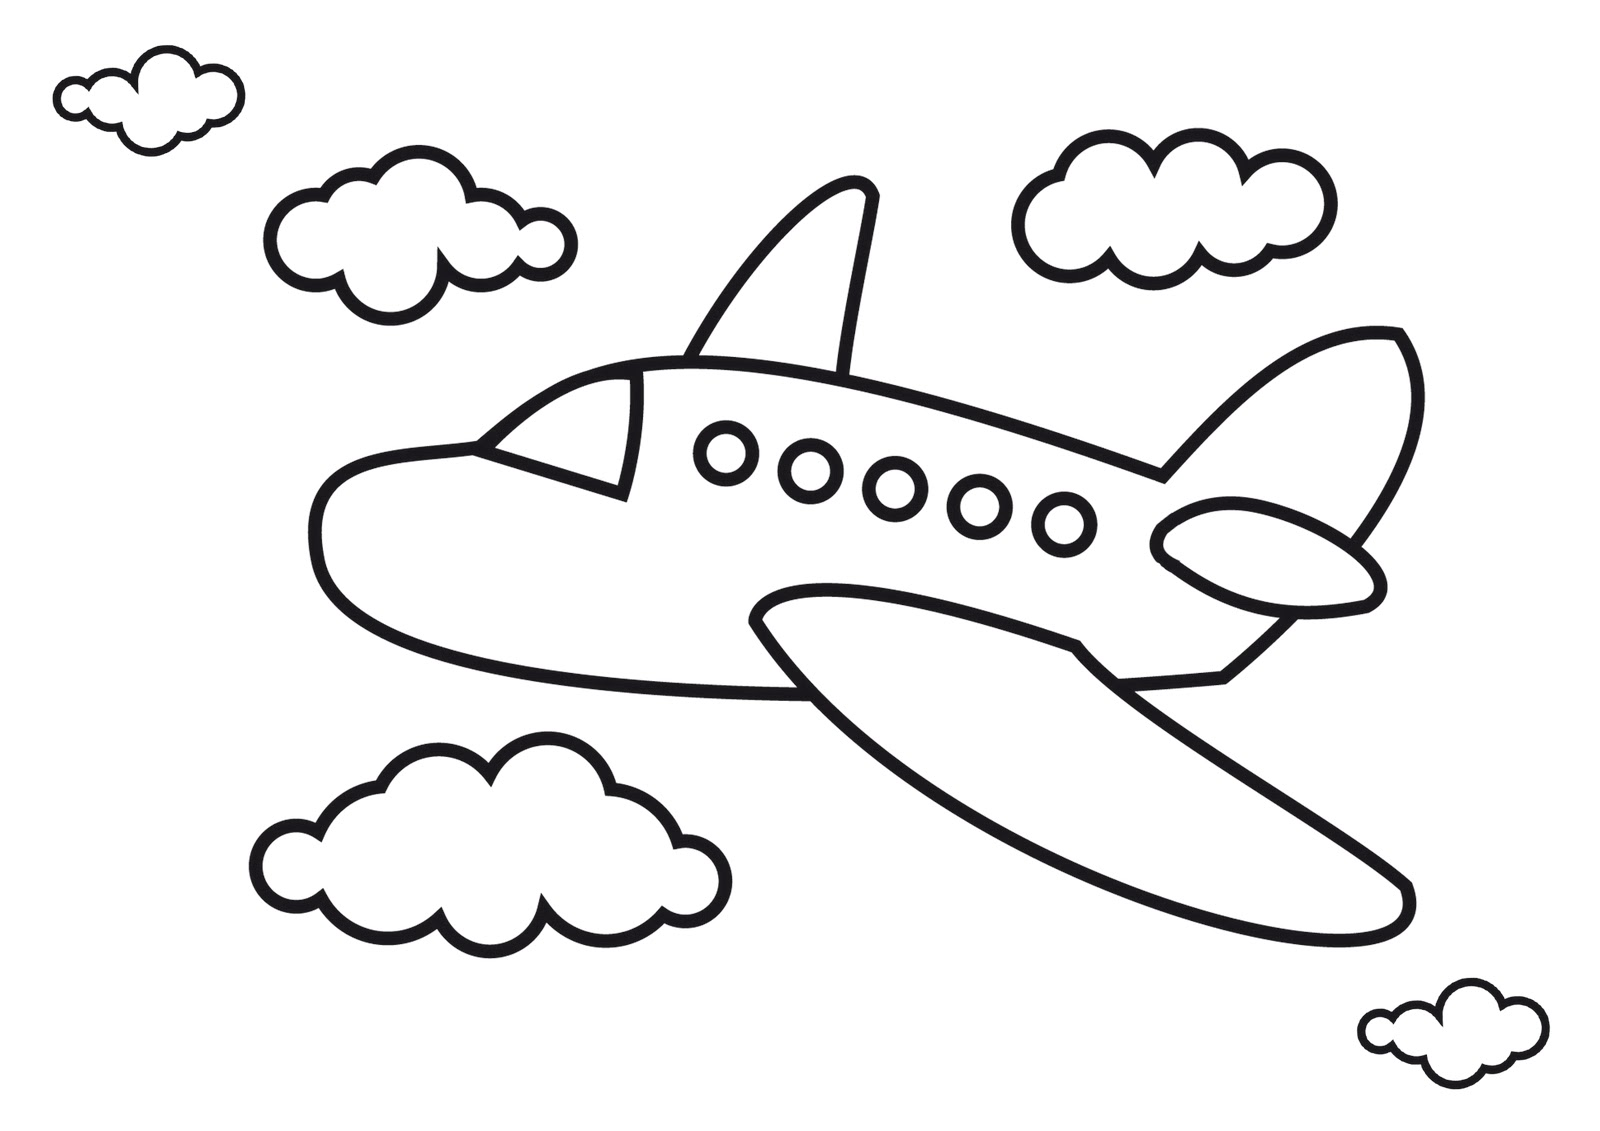 Free Airplane Drawing Pictures, Download Free Clip Art, Free.